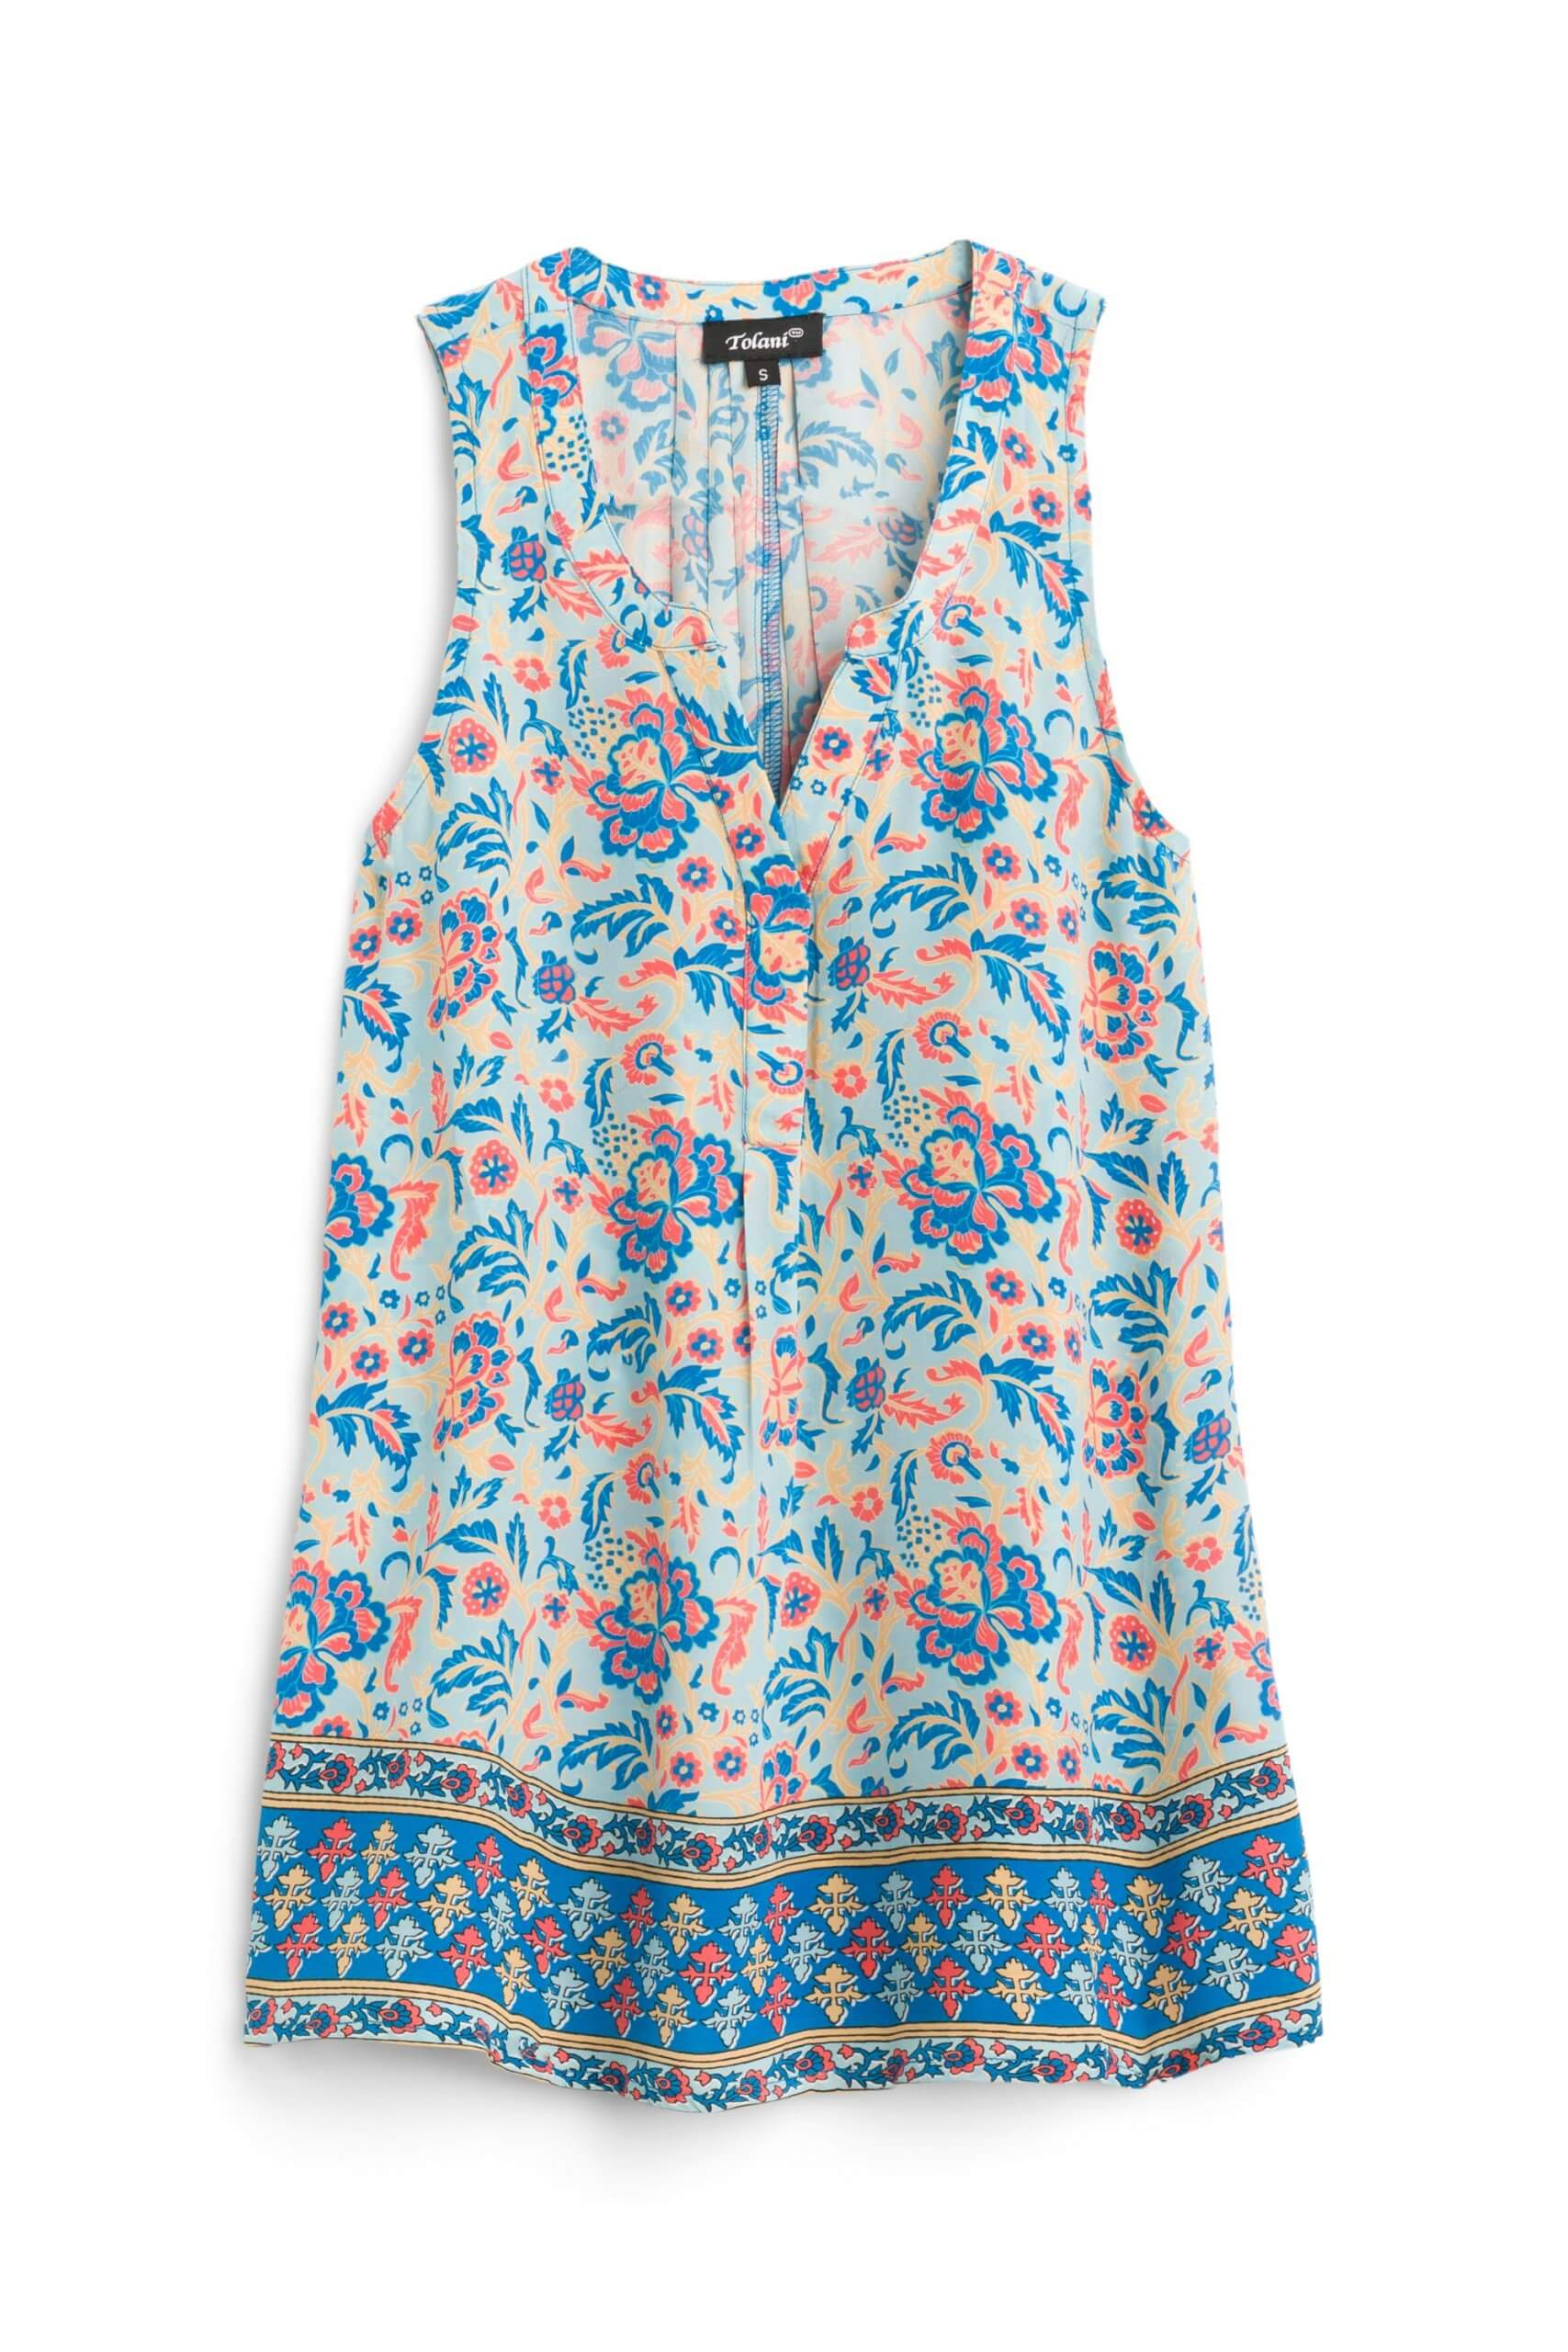 Stitch Fix Women's white, blue and pink printed silk blouse.